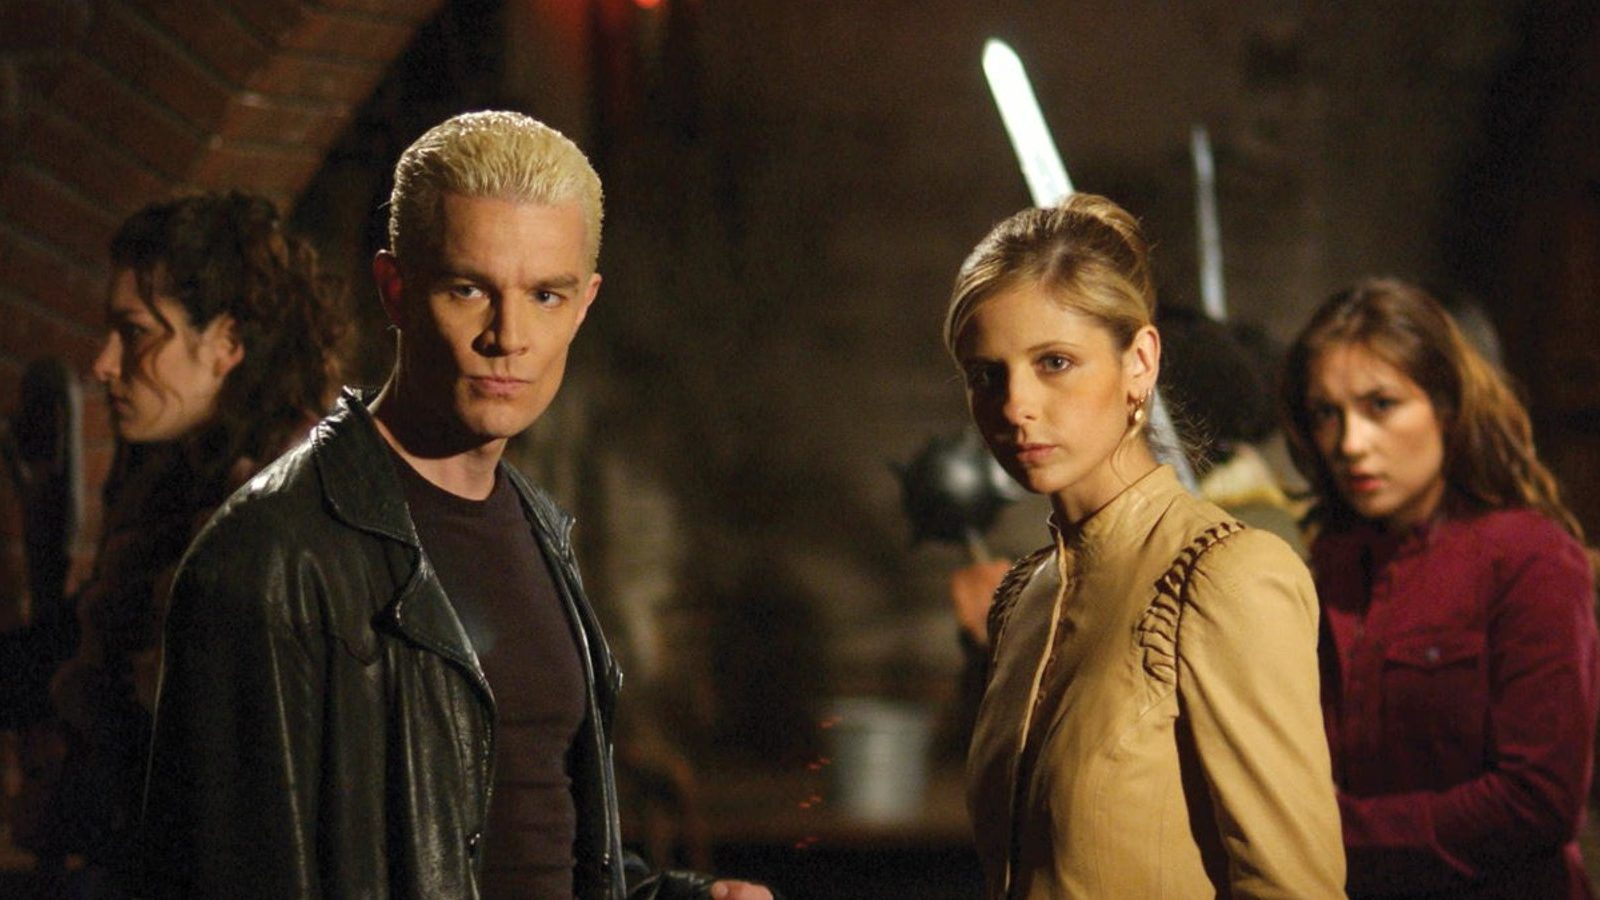 James Marsters and Sarah Michelle Gellar in Buffy the Vampire Slayer. Spike (left) and Buffy (right) appear to be stood in a dimly lit room with low brick arched ceilings. Spike has white blond hair slicked back, and a black leather jacket over a black t-shirt. Buffy, whose blonde hair is up in a neat bun, is wearing a beige shirt with detailing on the shoulders which buttons up to her neck. Both are looking off-centre, intrigued.